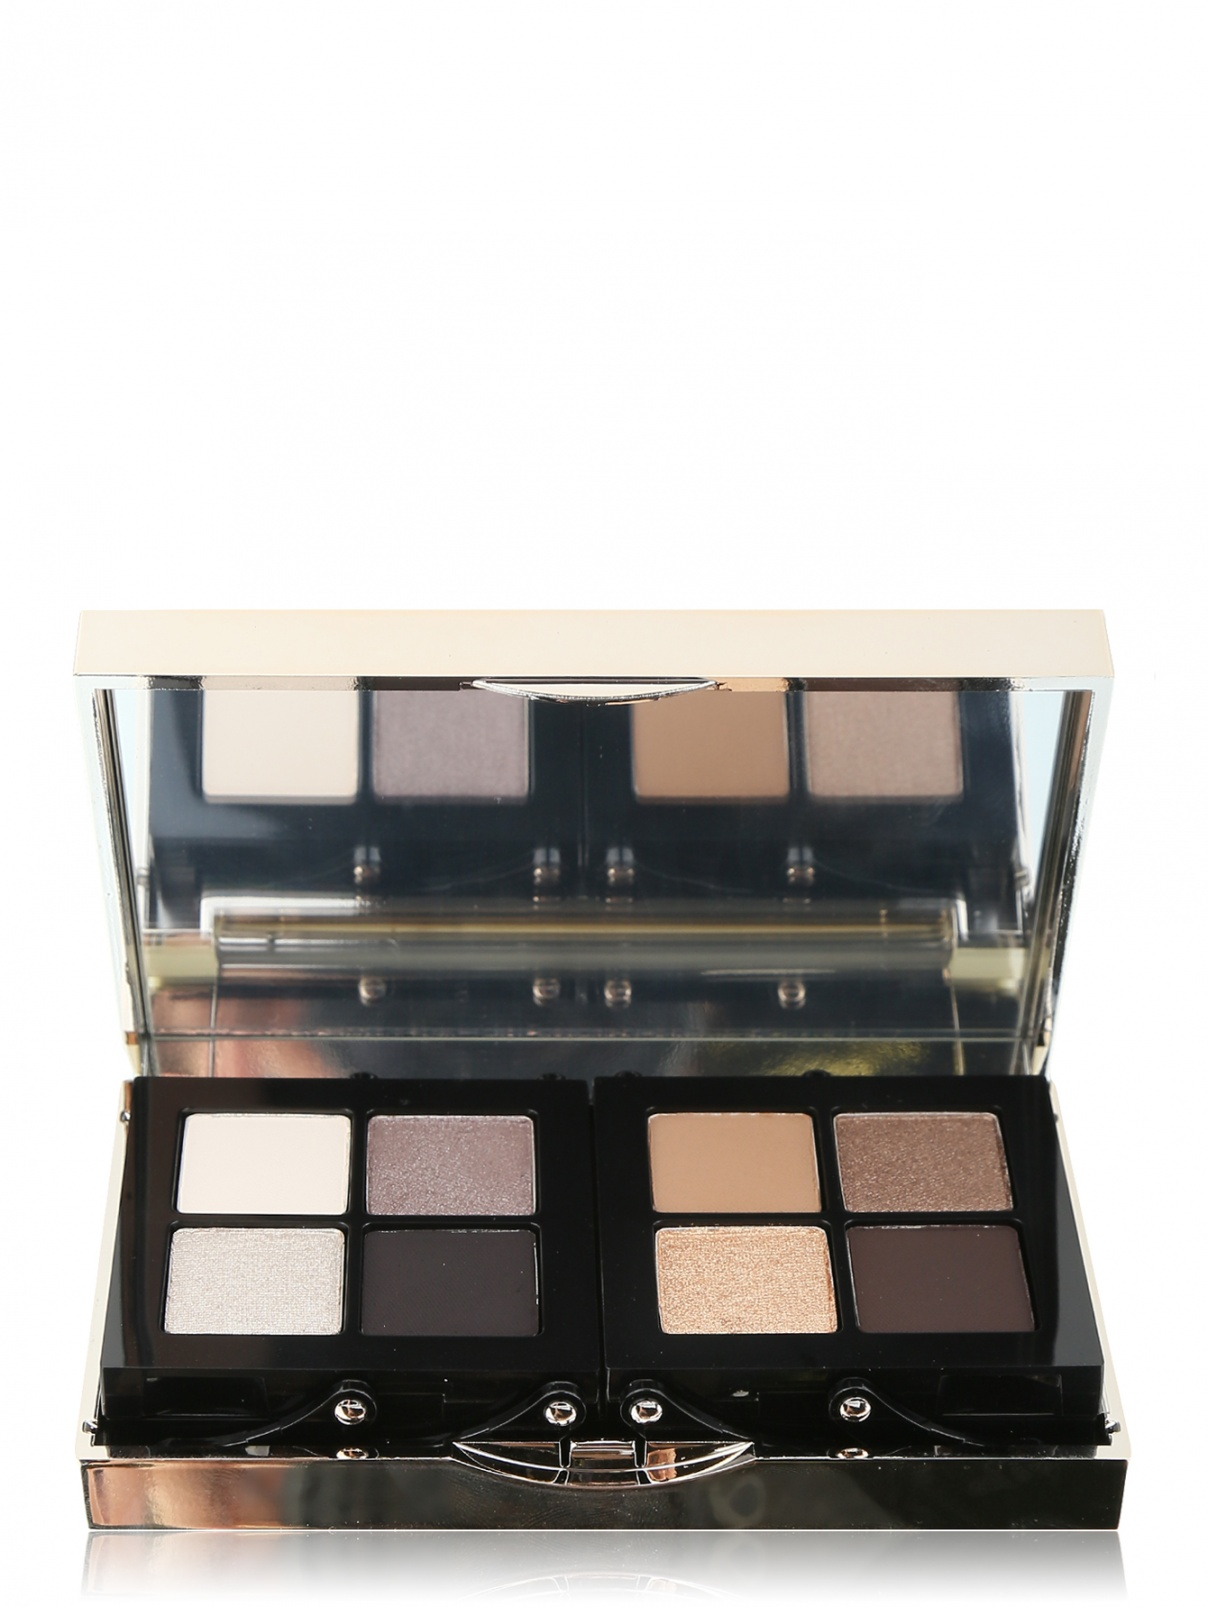 Палетка для глаз IT'S YOUR PARTY Makeup Bobbi Brown  –  Общий вид